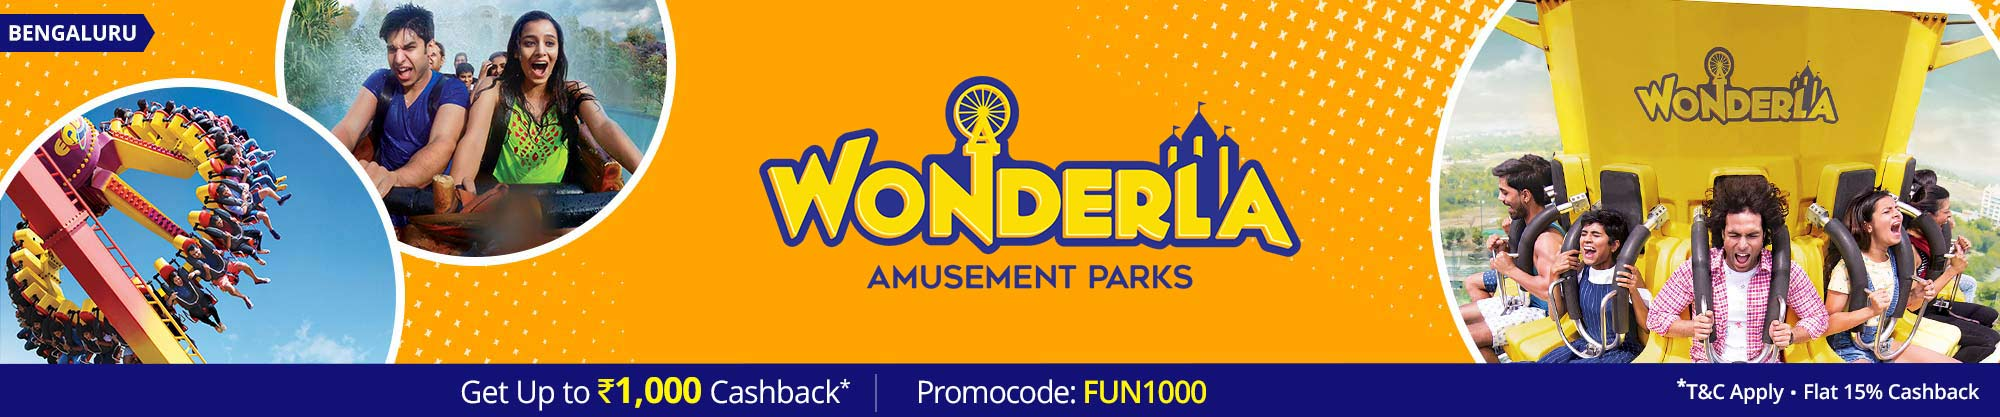 wonderla bangalore - flash sale